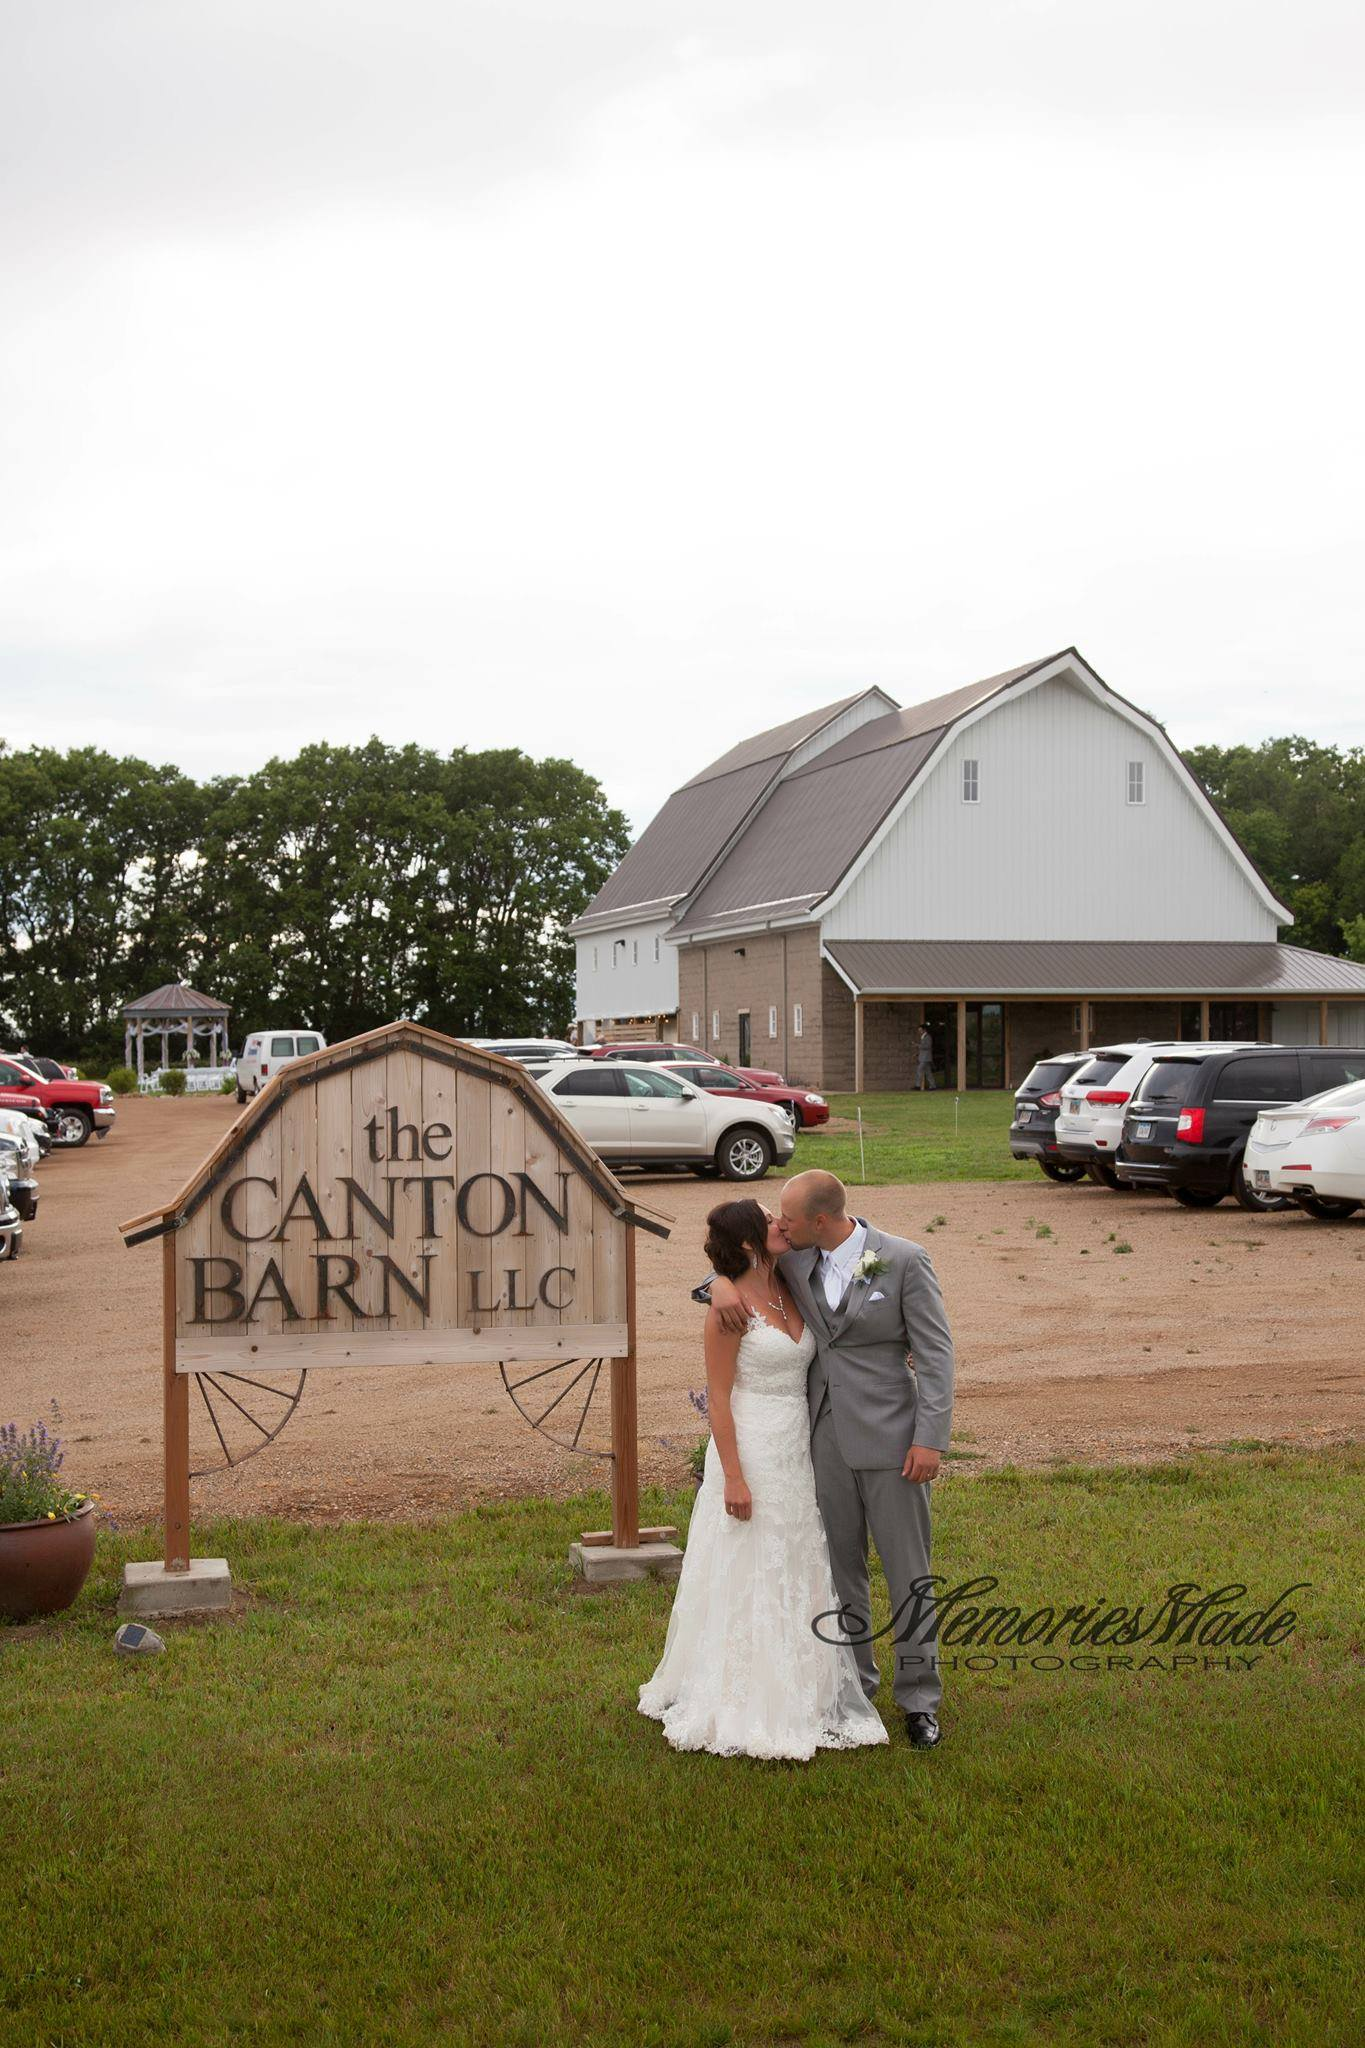 The Canton Barn, LLC.